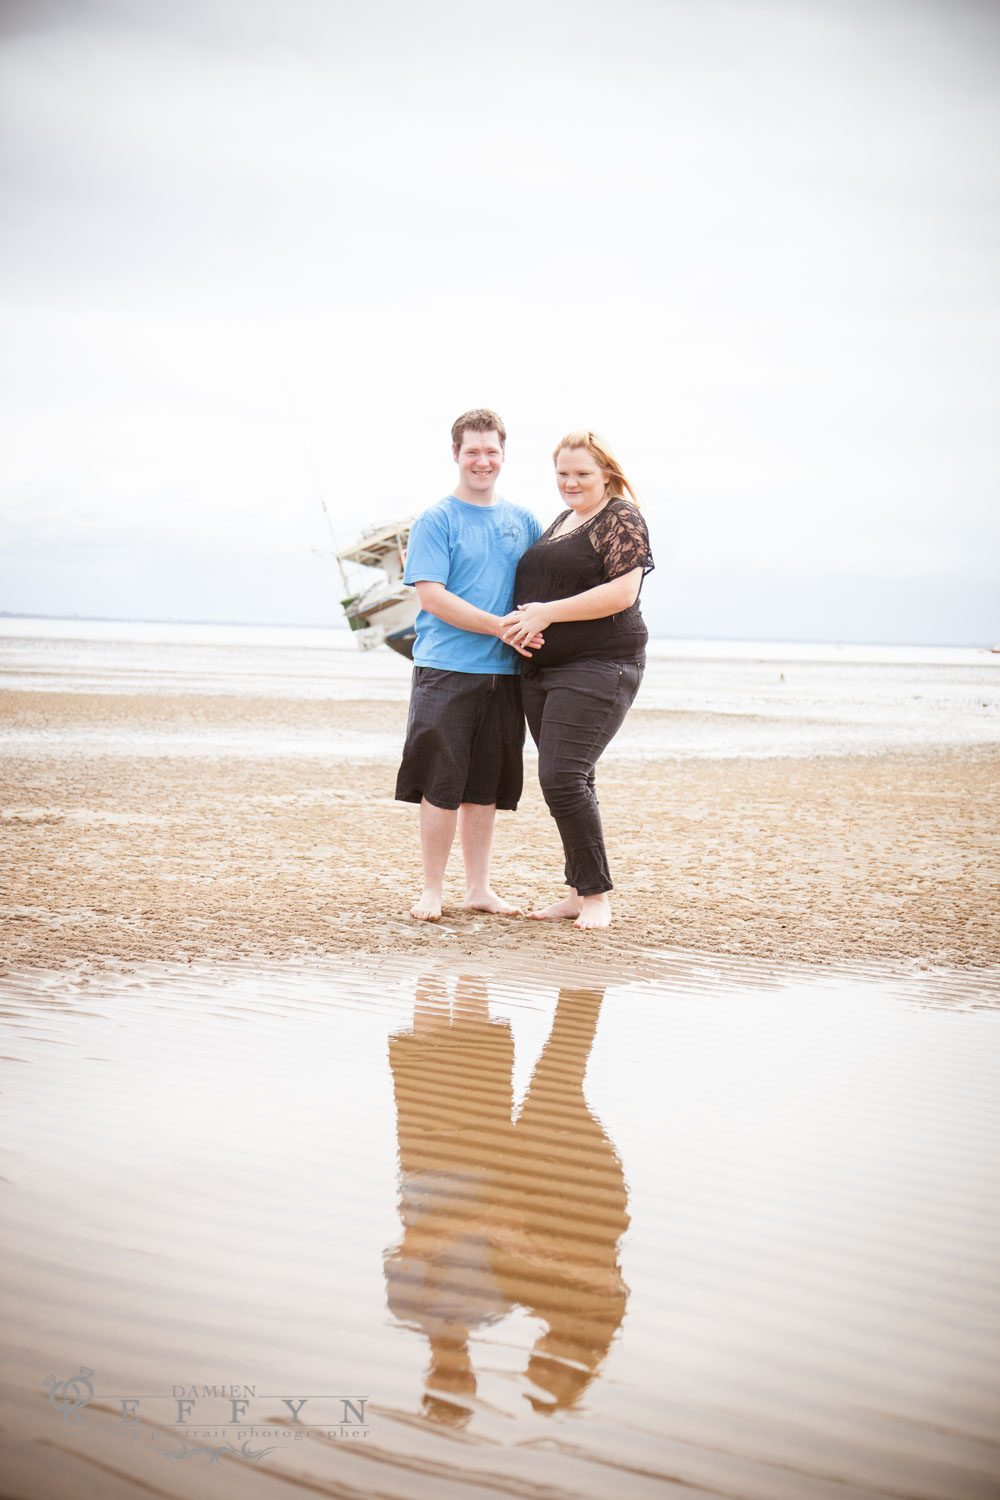 Belinda Beachside Maternity Portraits Scarborough, Scarborough Maternity Photographer, Brisbane Maternity Photographer,Brisbane, Gold Coast, Queensland